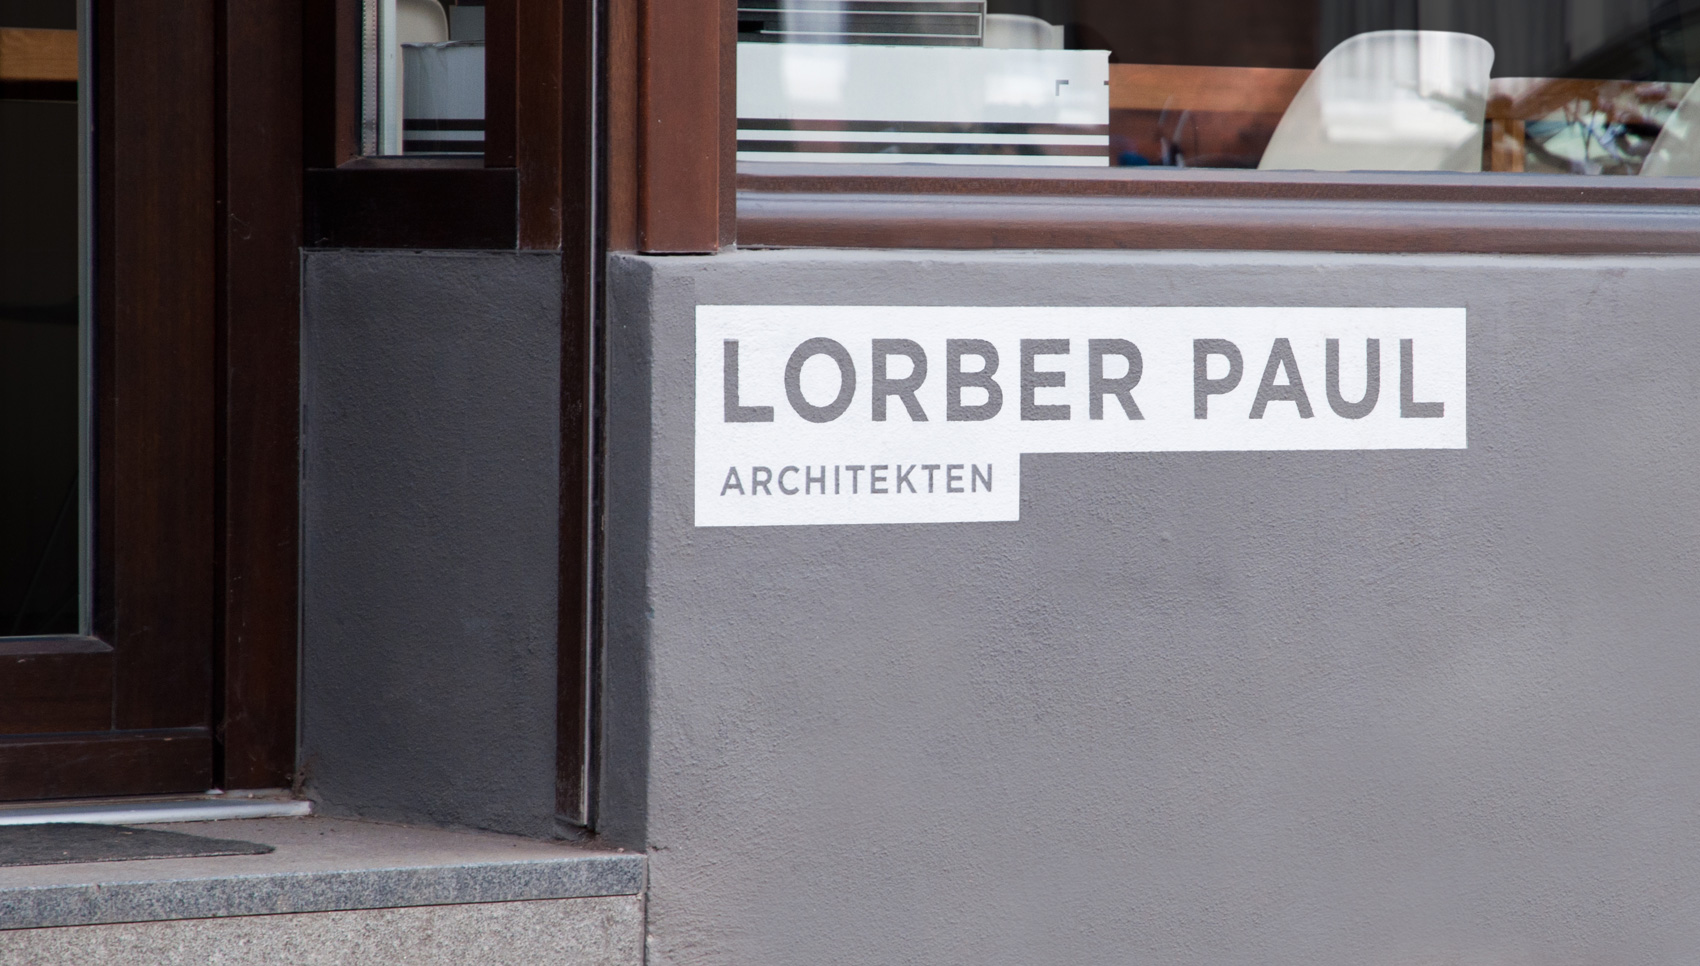 Lorber Paul Architekten. Corporate Design.